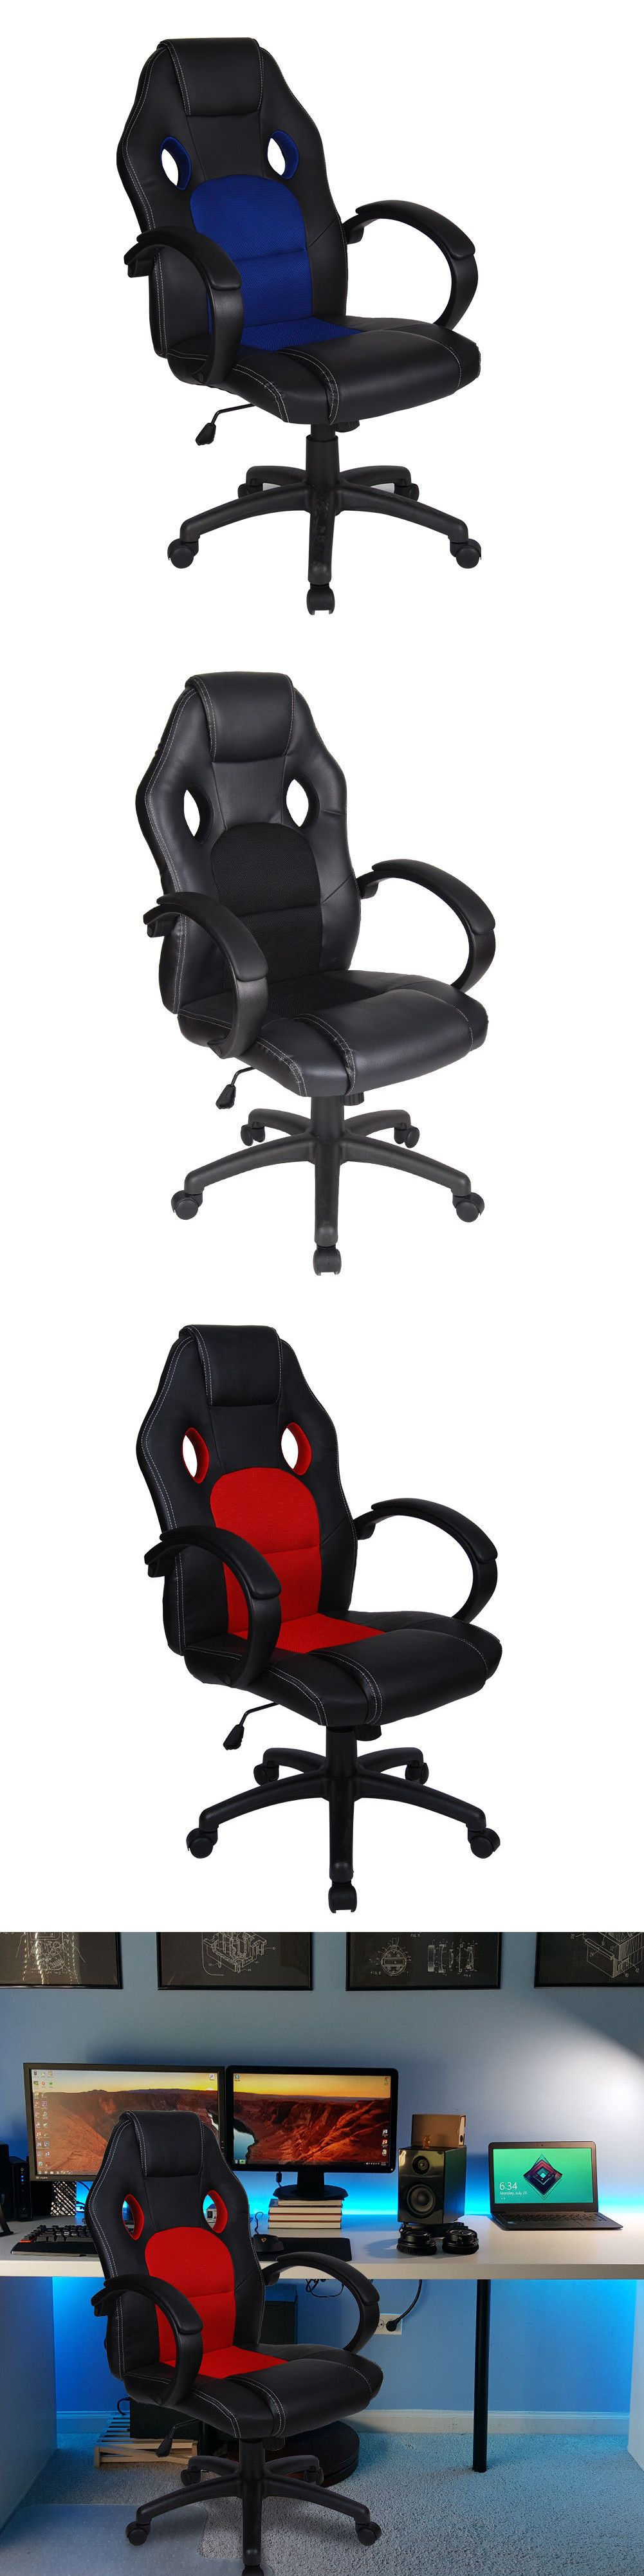 Outstanding Chairs And Stools 257900 Polar Aurora Office Chair Leather Alphanode Cool Chair Designs And Ideas Alphanodeonline